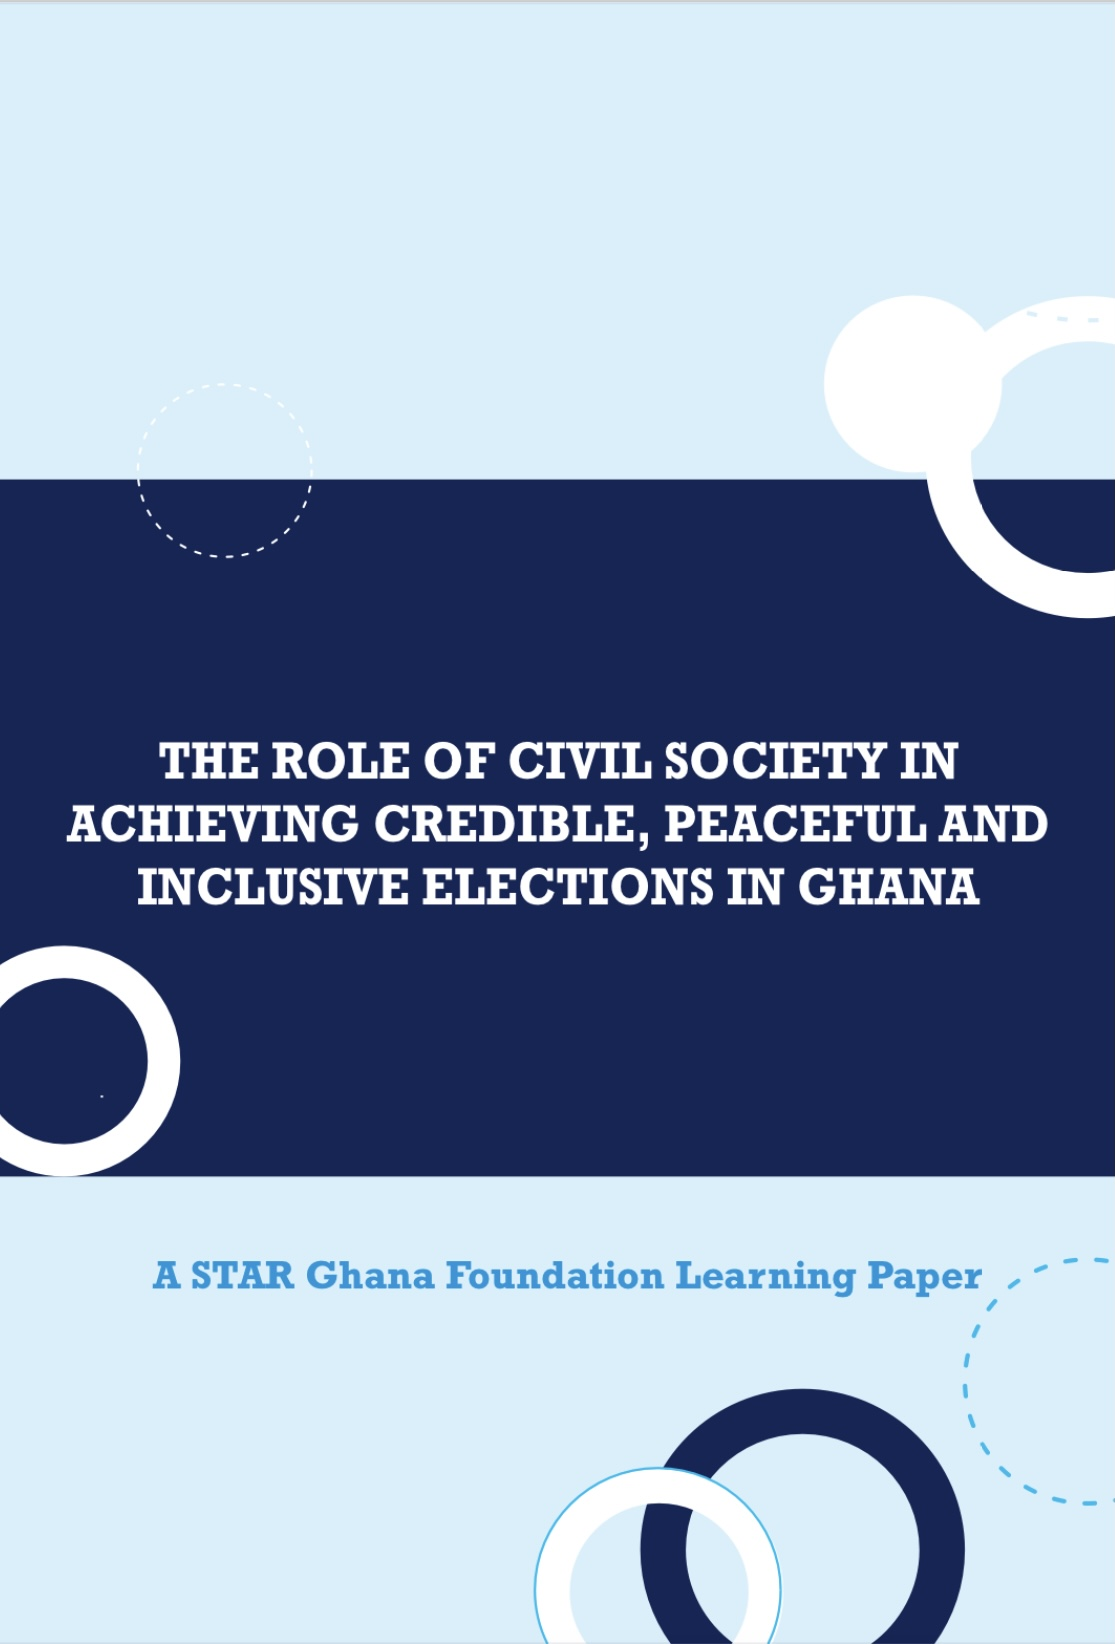 THE ROLE OF CIVIL SOCIETY IN ACHIEVING CREDIBLE, PEACEFUL AND INCLUSIVE ELECTIONS 2020 IN GHANA